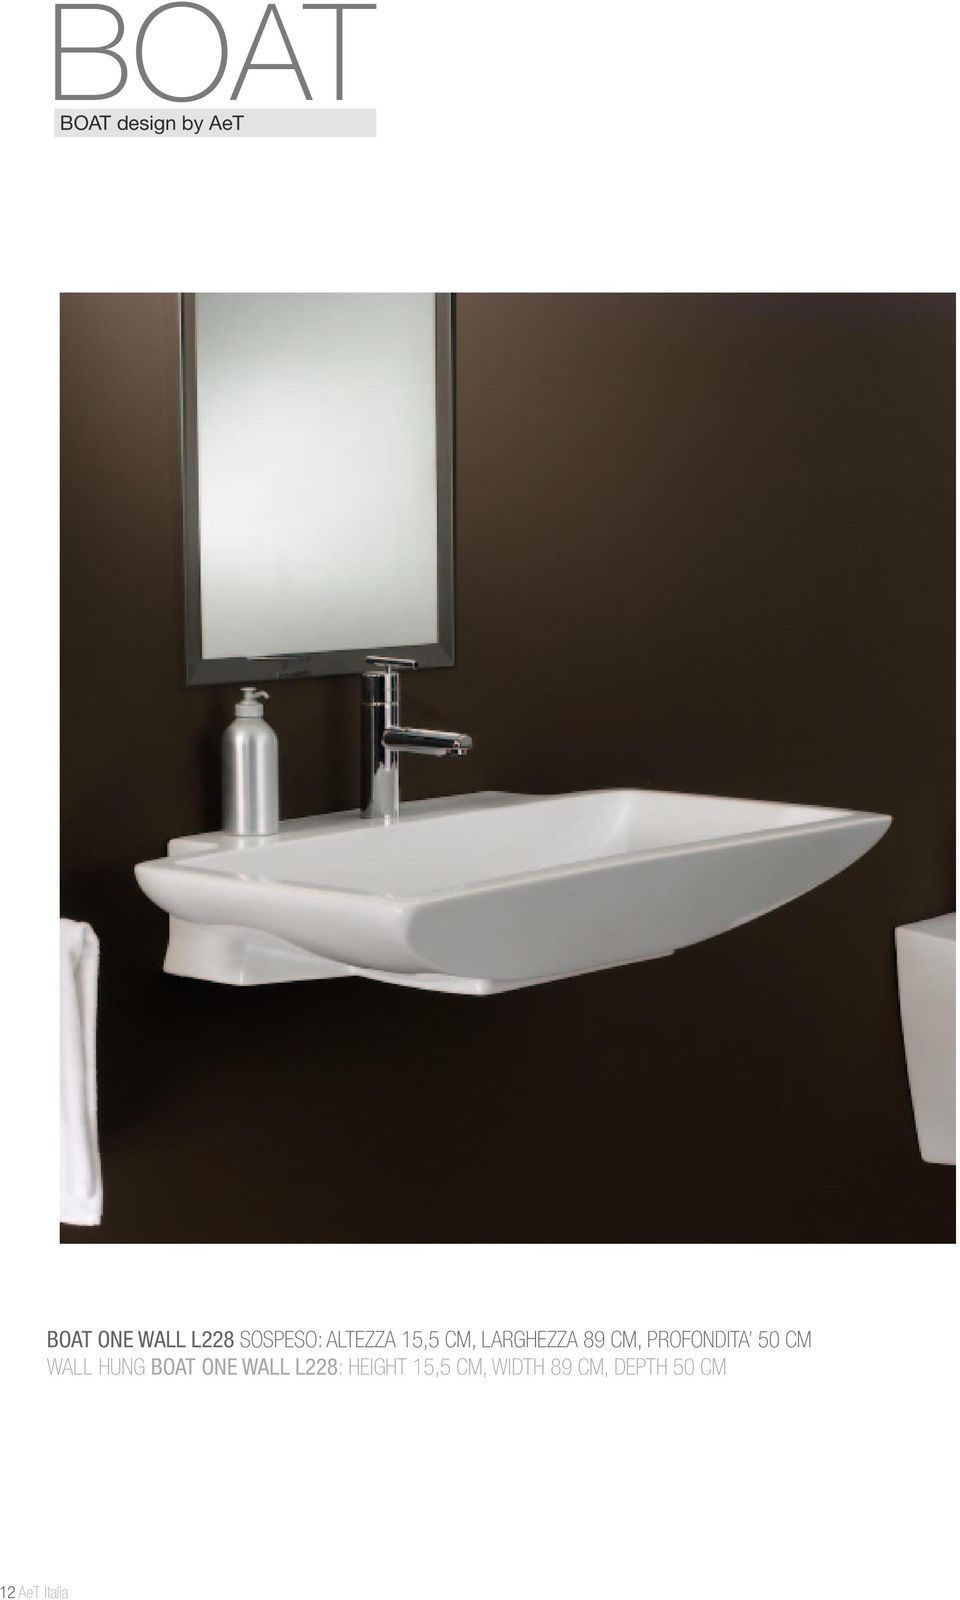 PROFONDITA 50 CM WALL HUNG BOAT ONE WALL L228: